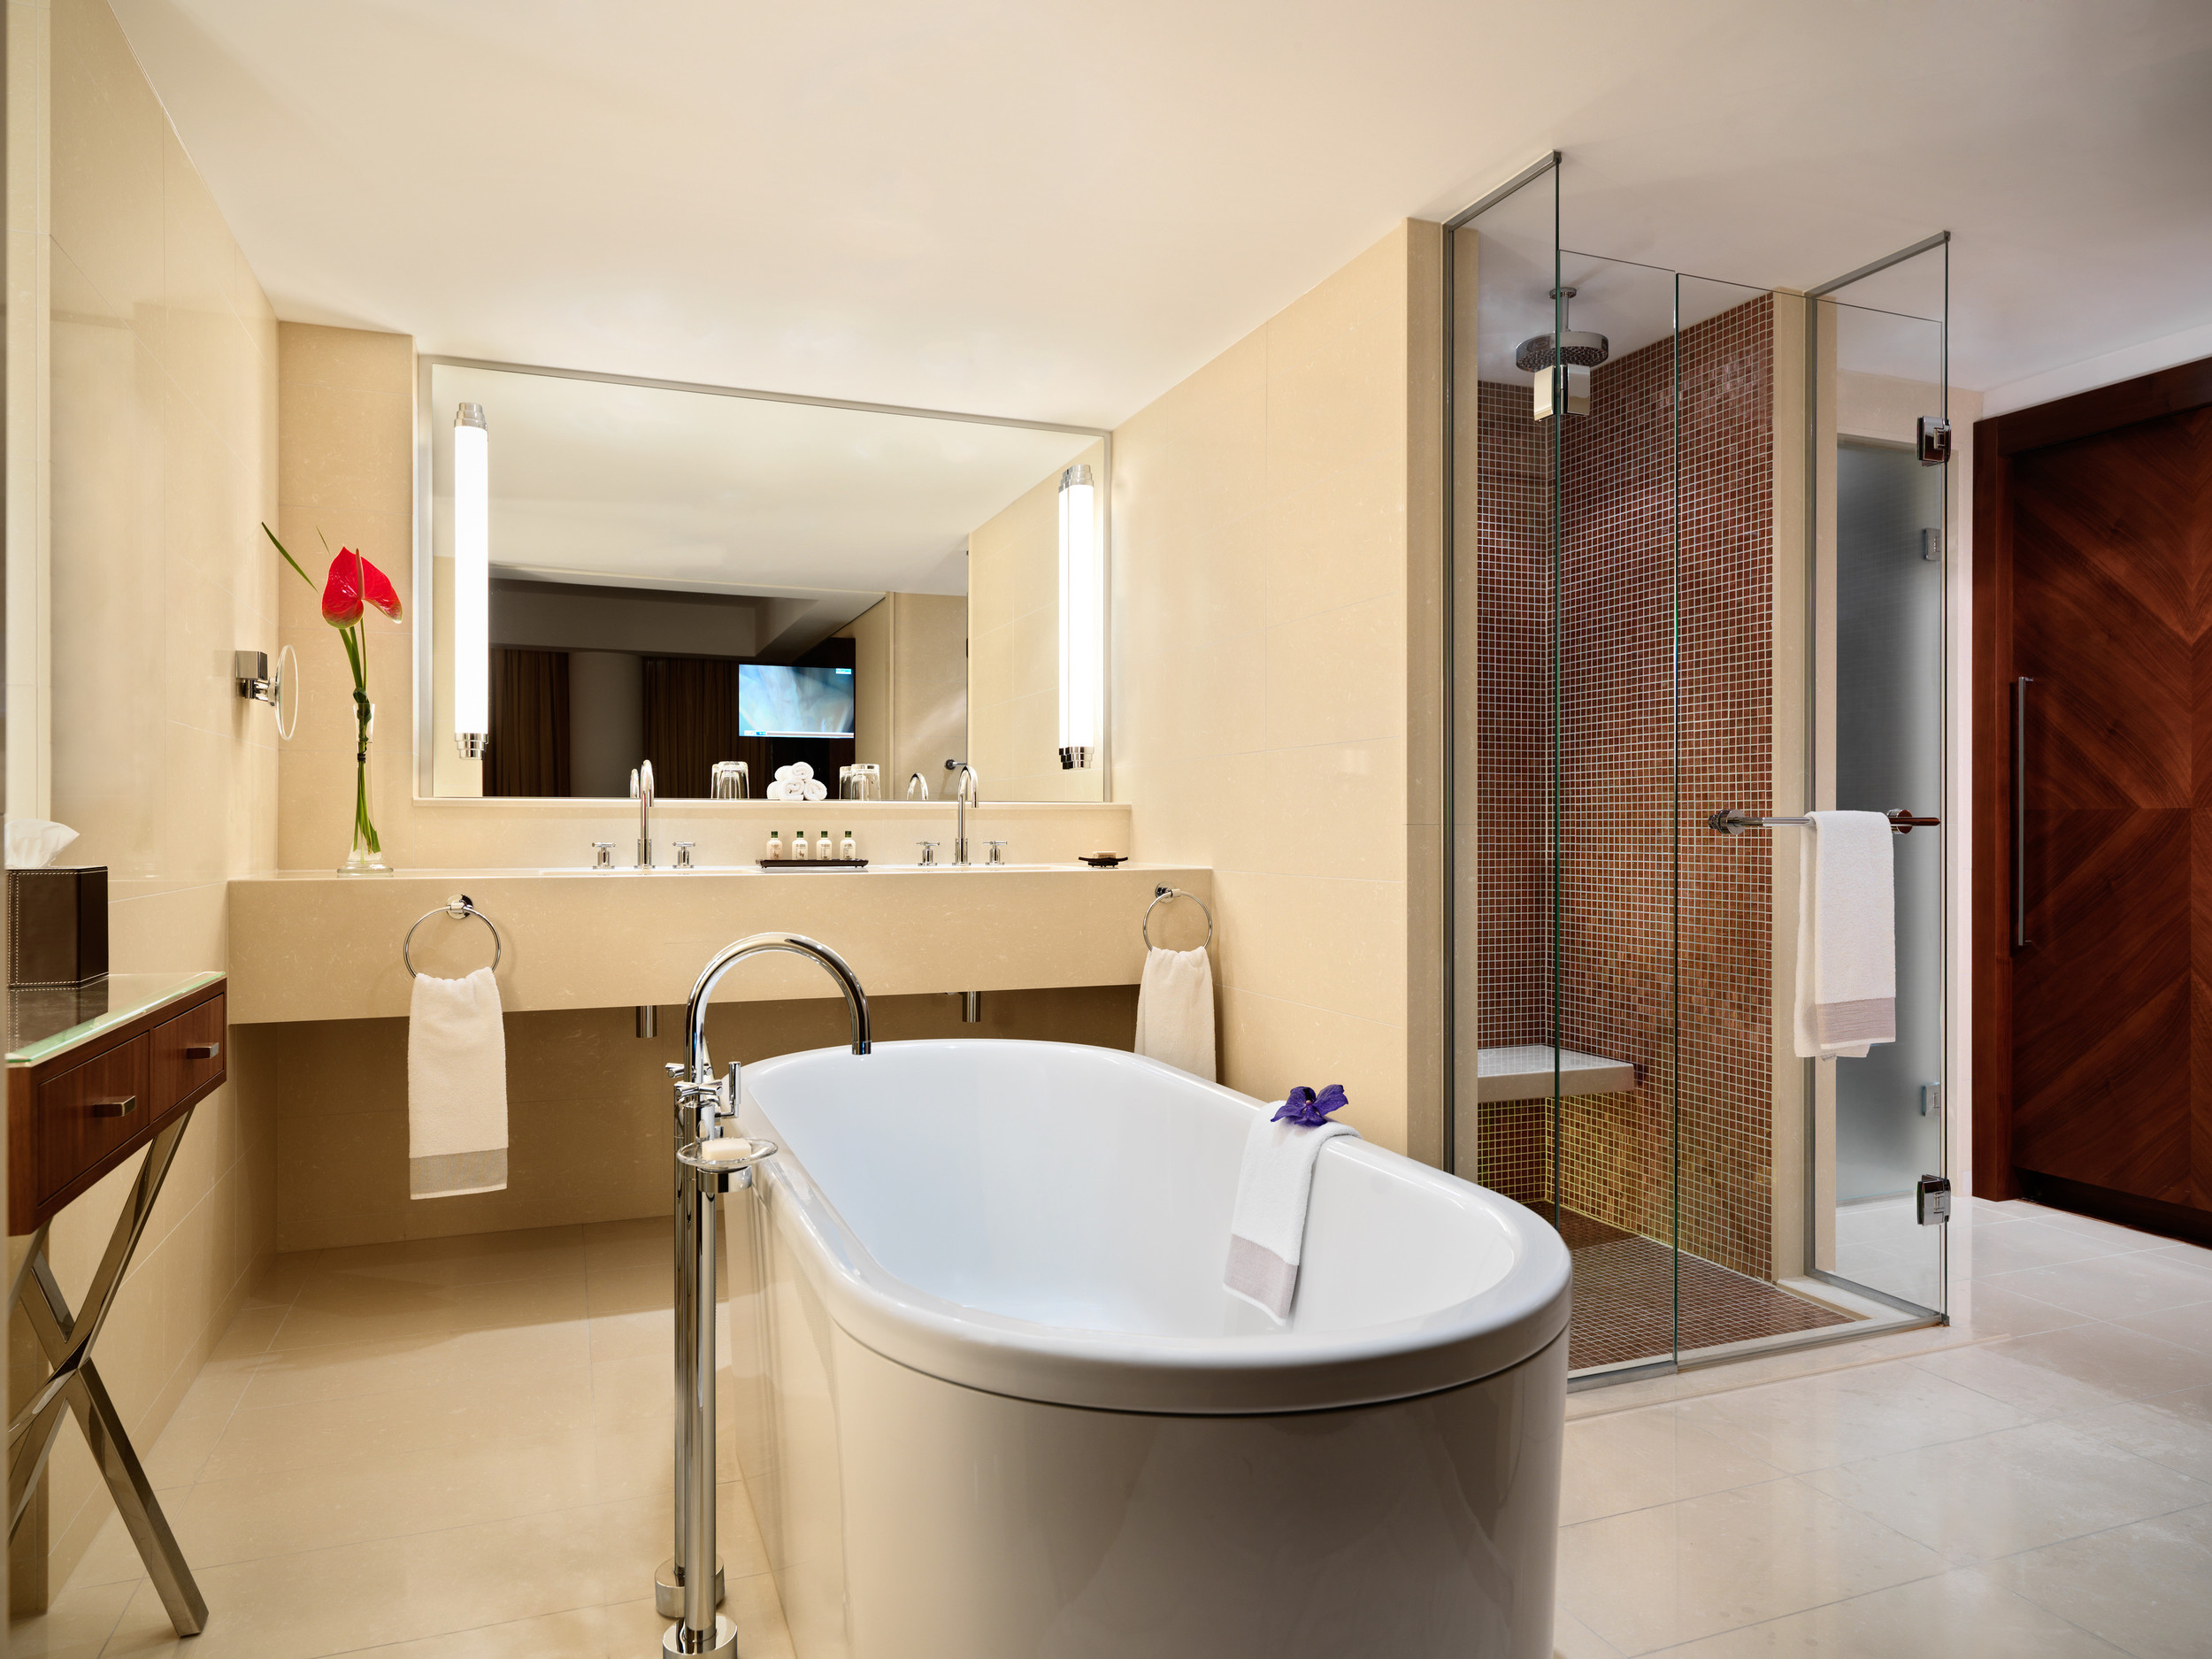 Jumeirah Frankfurt  is a futuristic tower (with fittingly minimalist interiors) set within the heart of the historic city